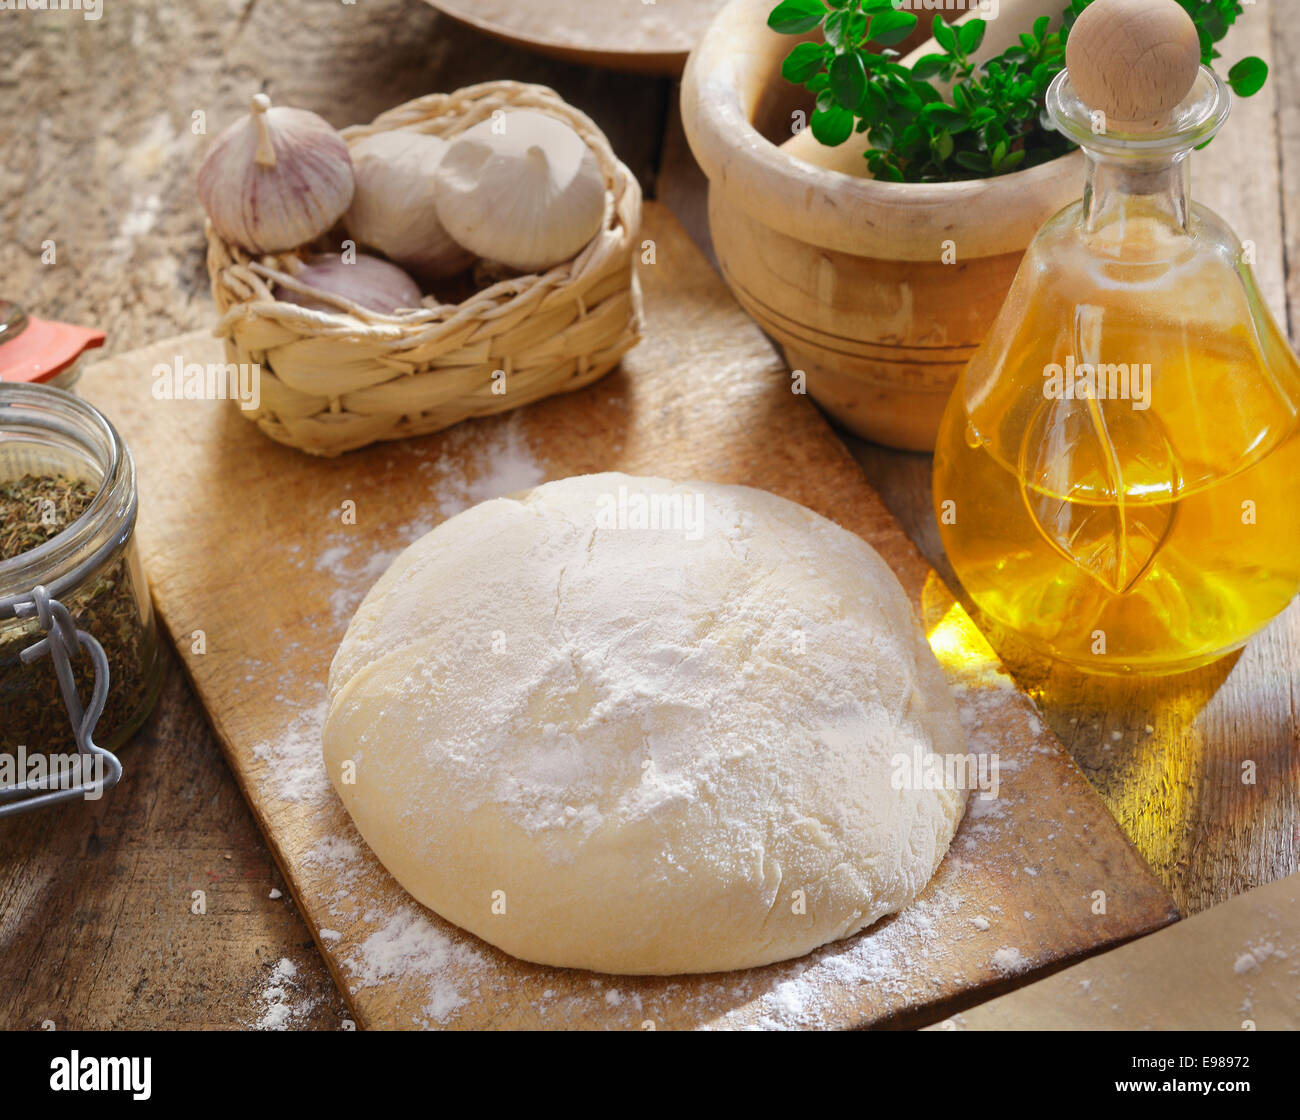 Pizza dough being left to rise surrounded by fresh herbs, garlic and ingredients in the kitchen Stock Photo